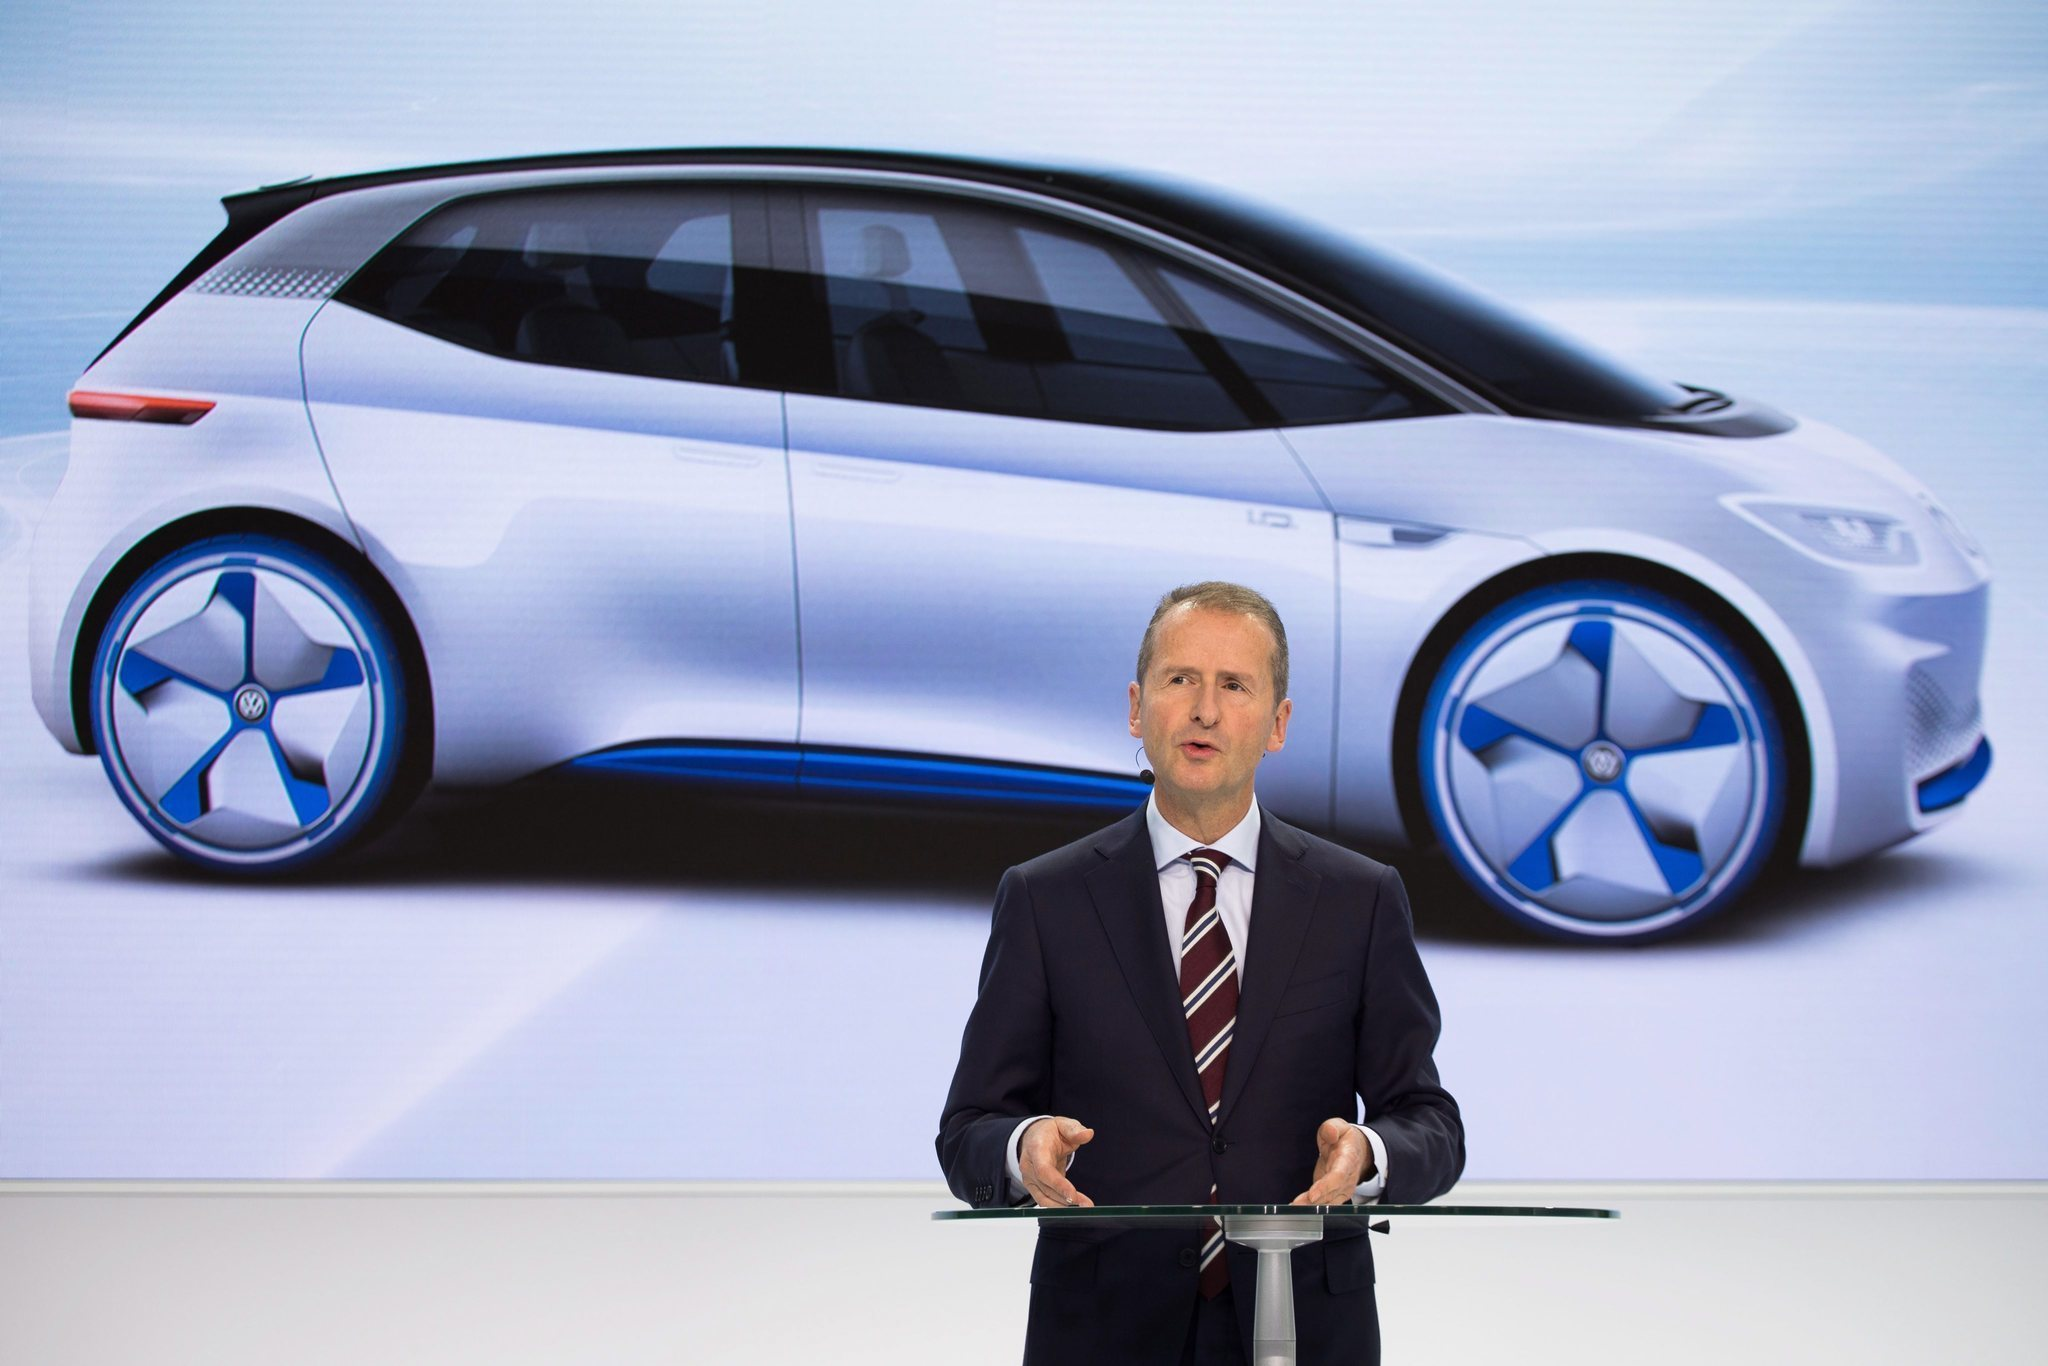 Volkswagen Plans Big Changes, Betting On Electric Cars And